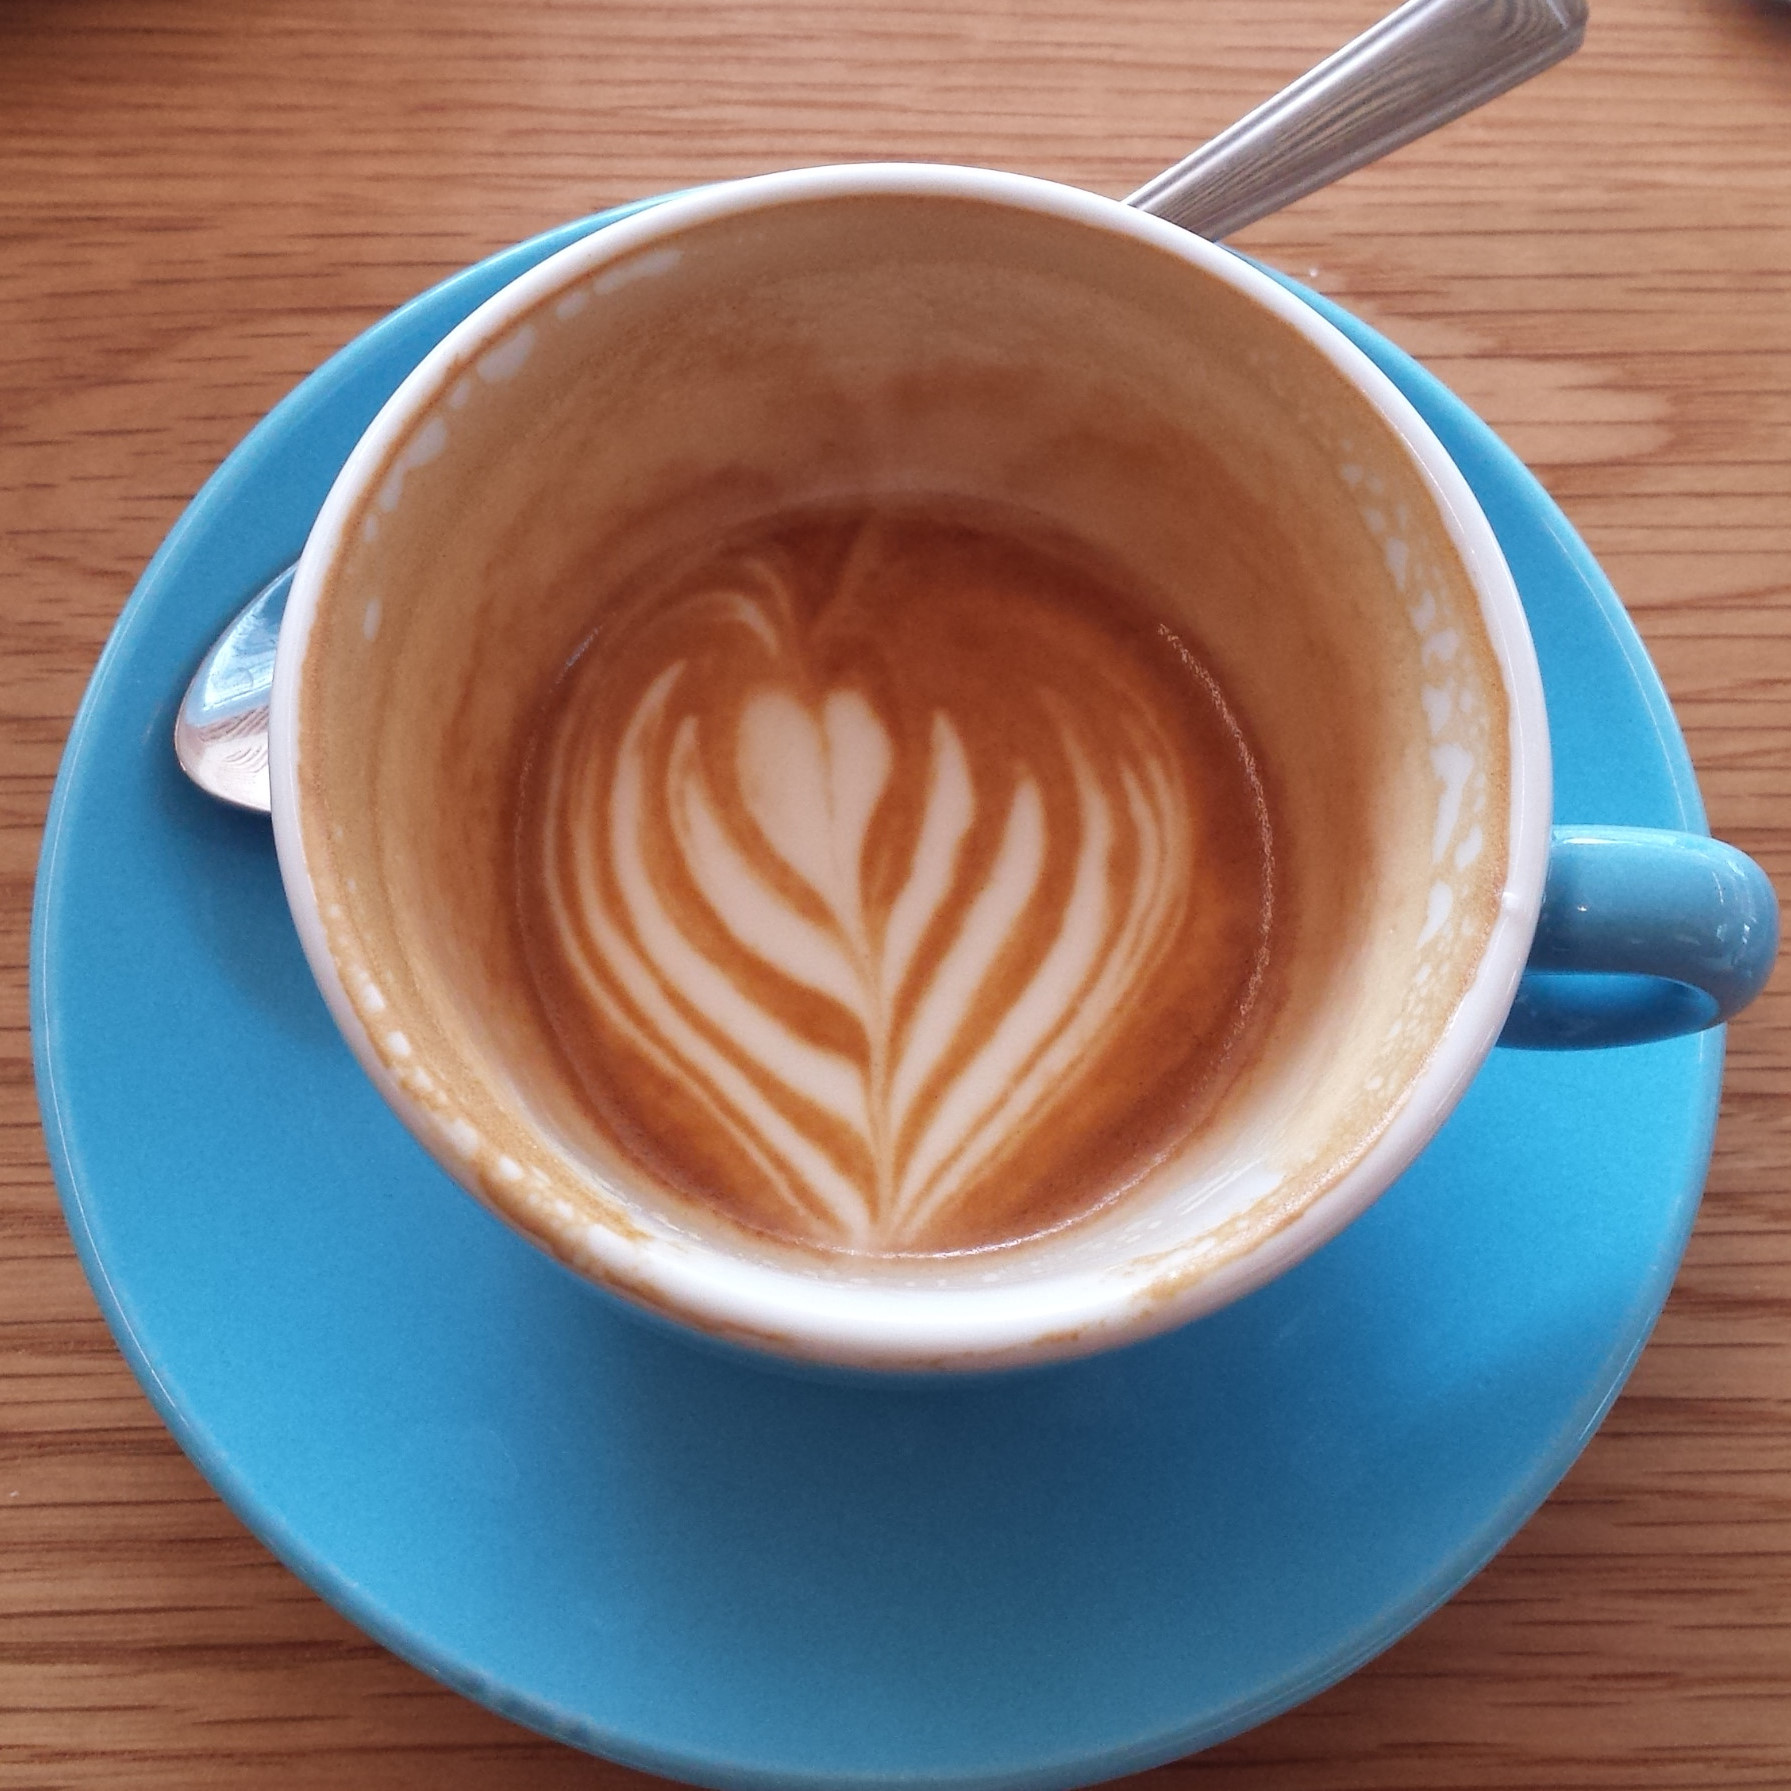 A flat white at Beany Green in Broadgate Circle, with the latte art holding its pattern all the way down to the bottom of the cup.